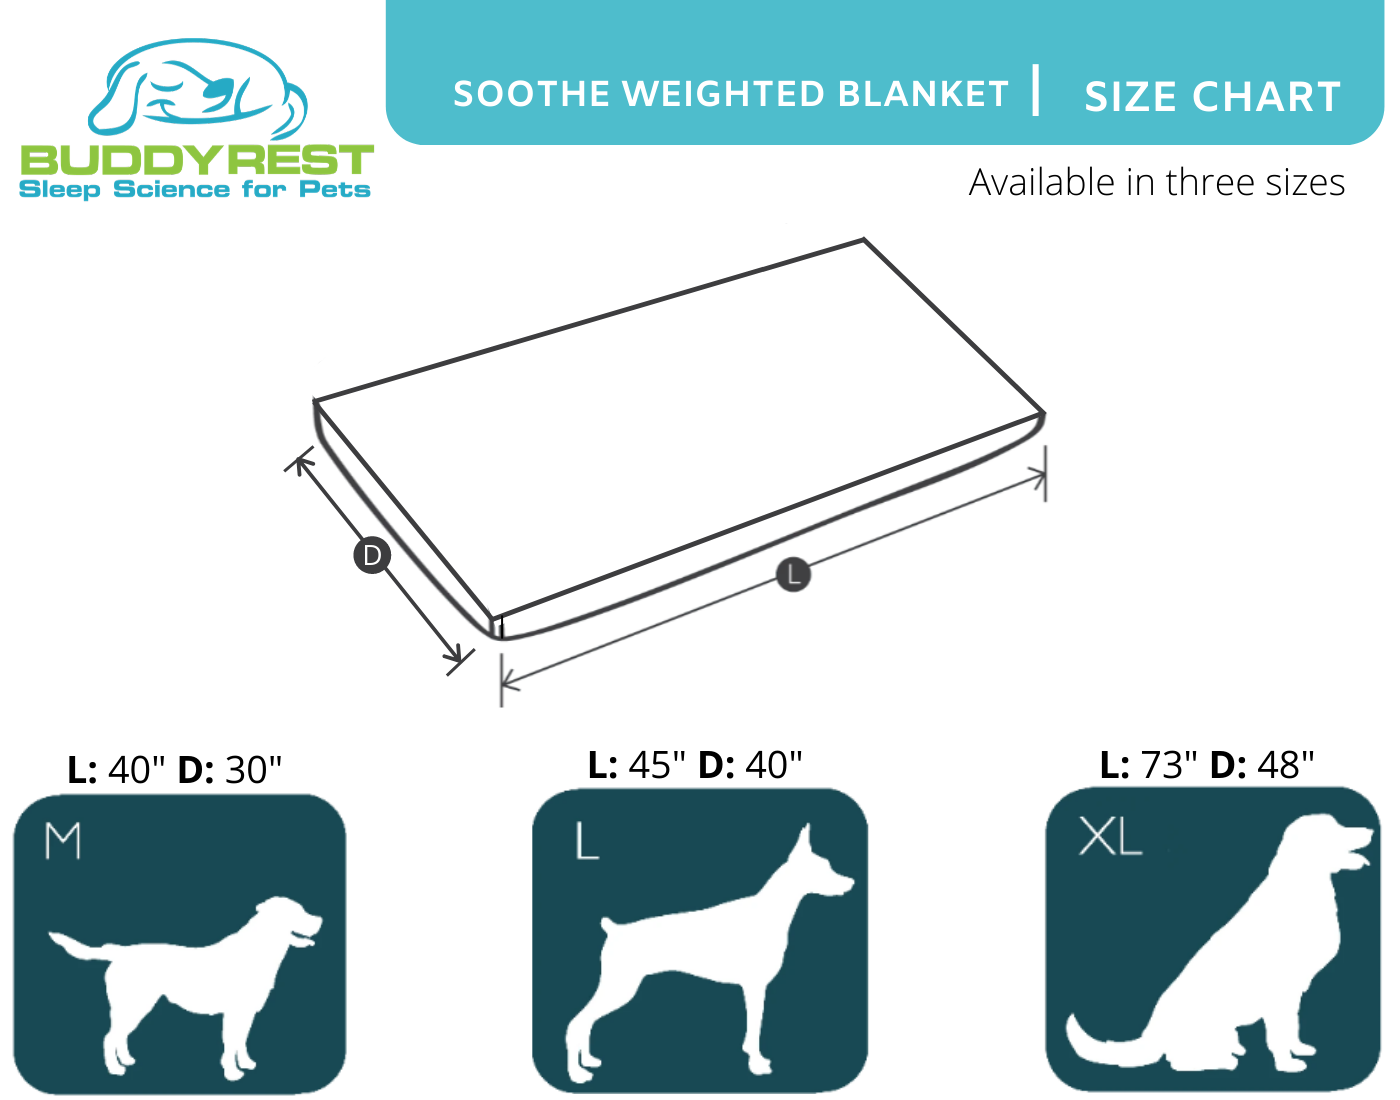 Soothe Weighted Blanket Size Chart